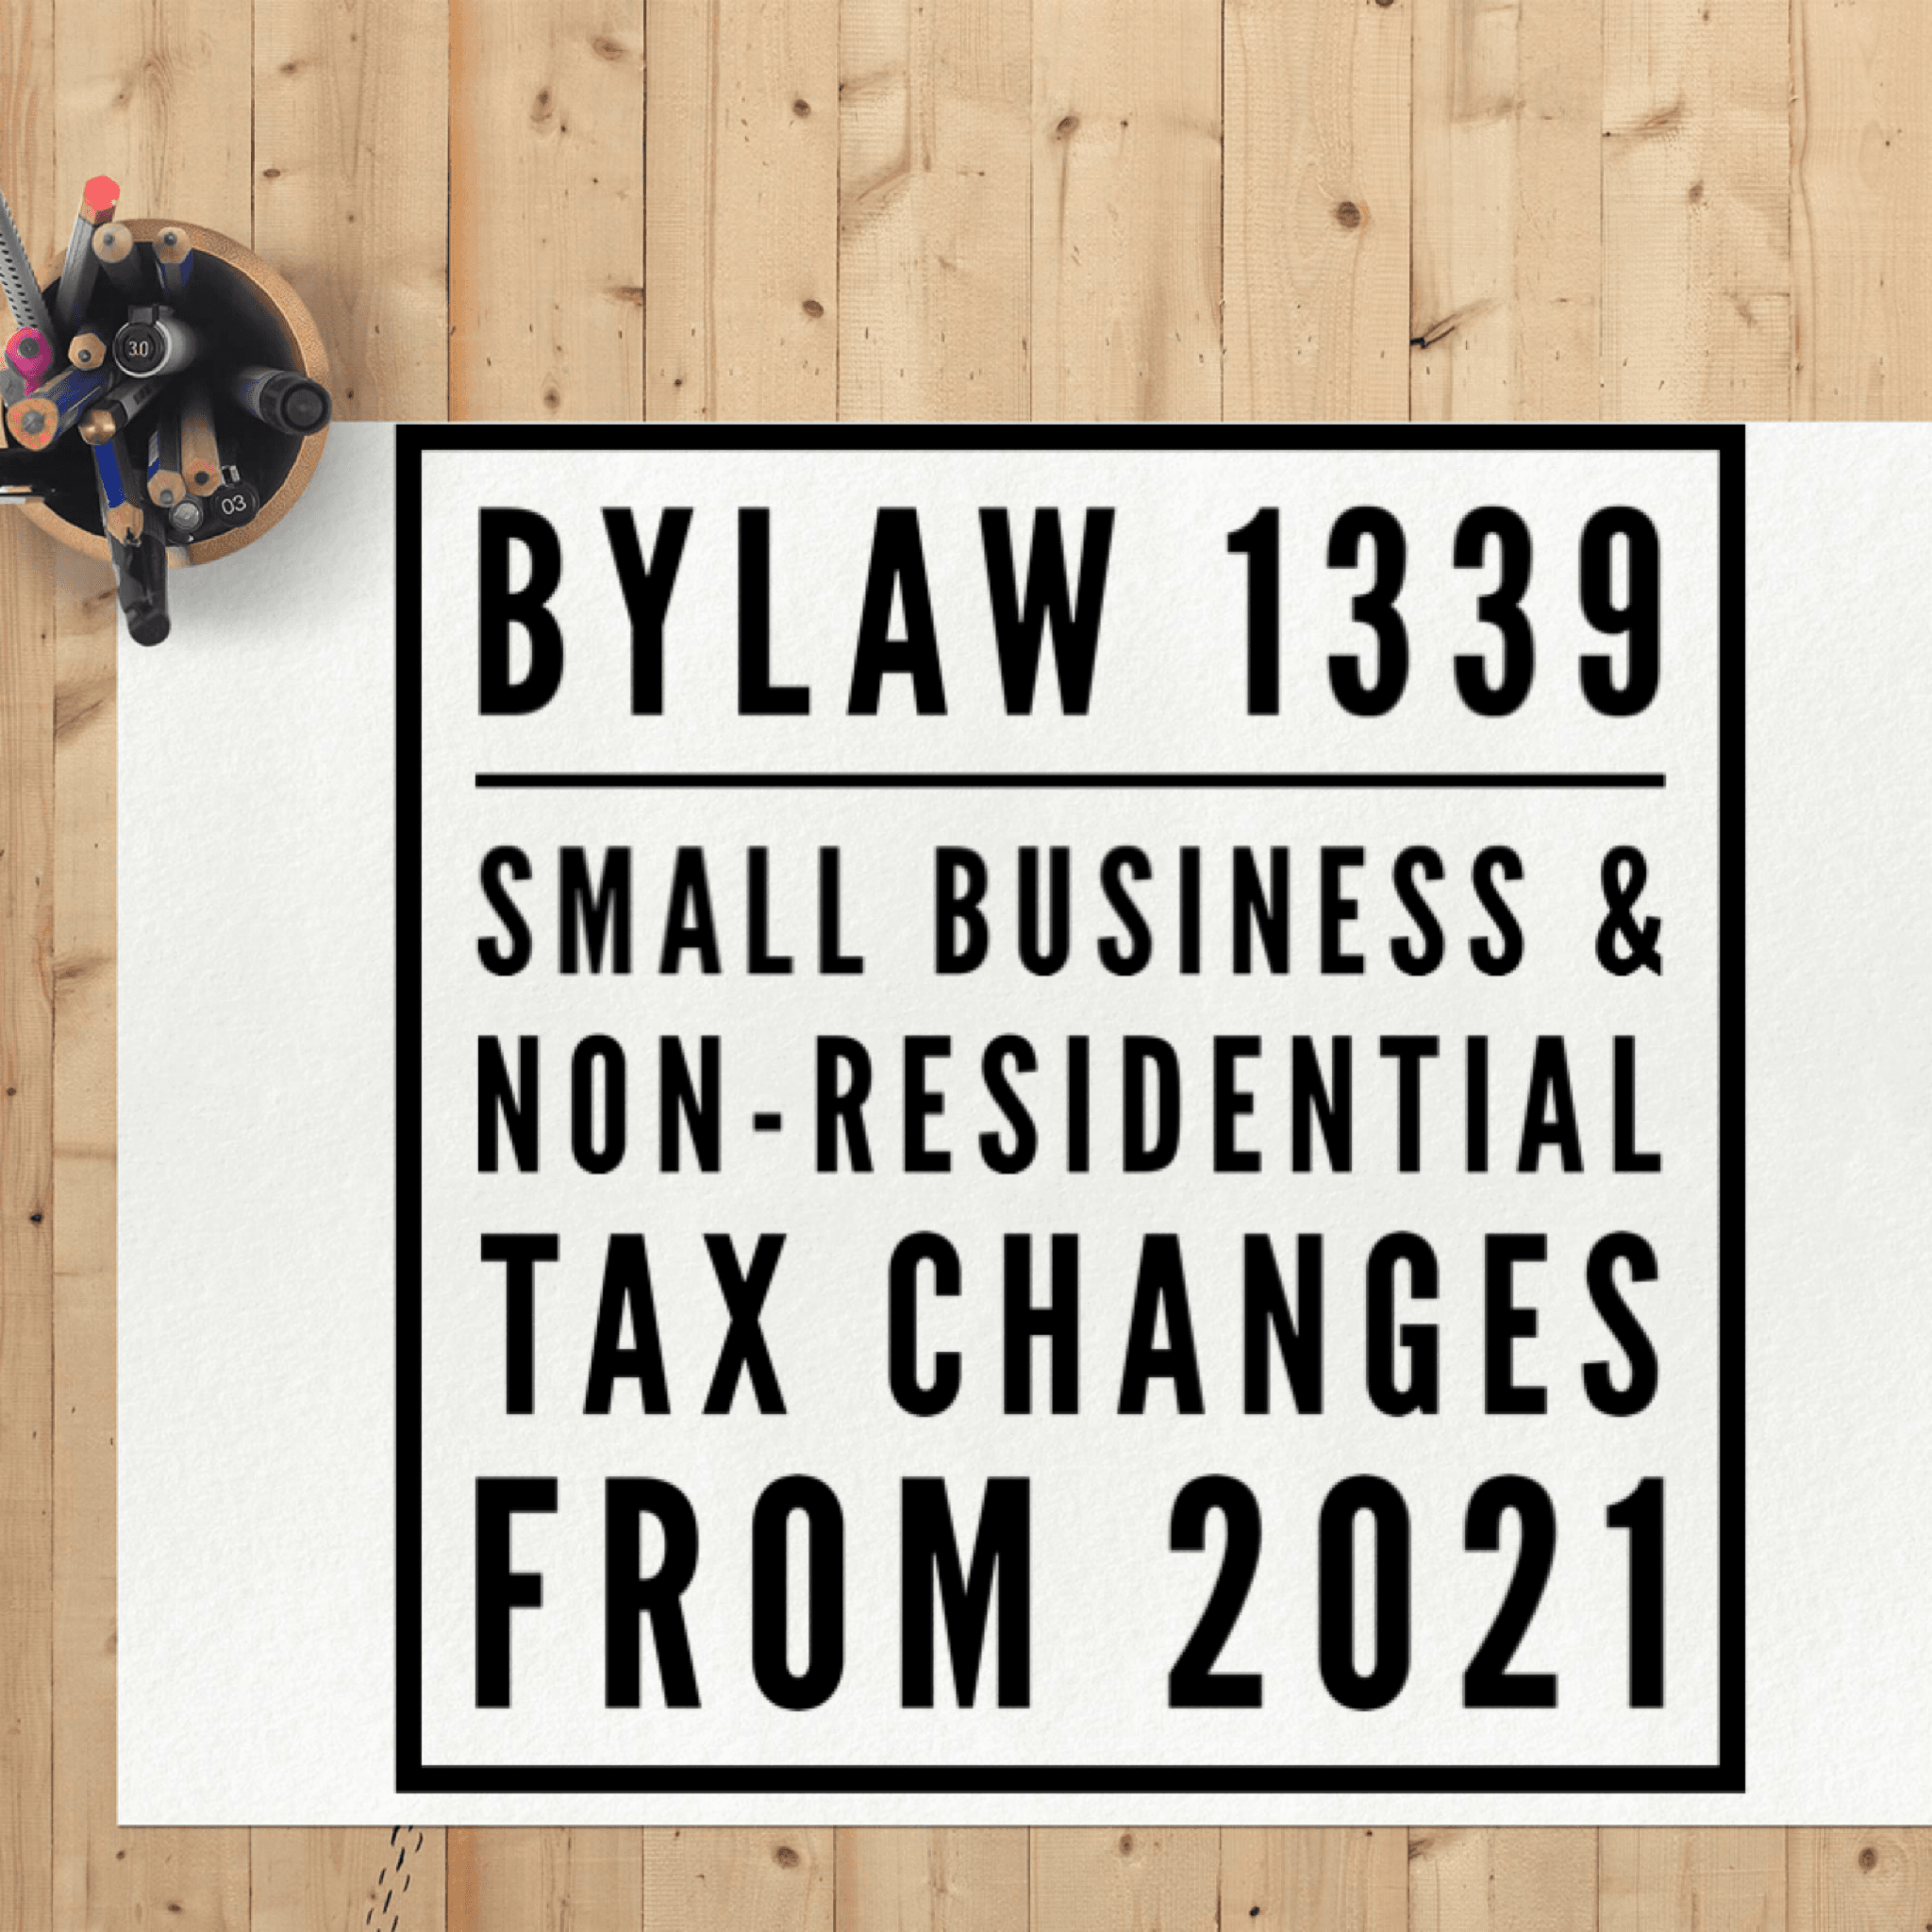 by 1339 tax changes